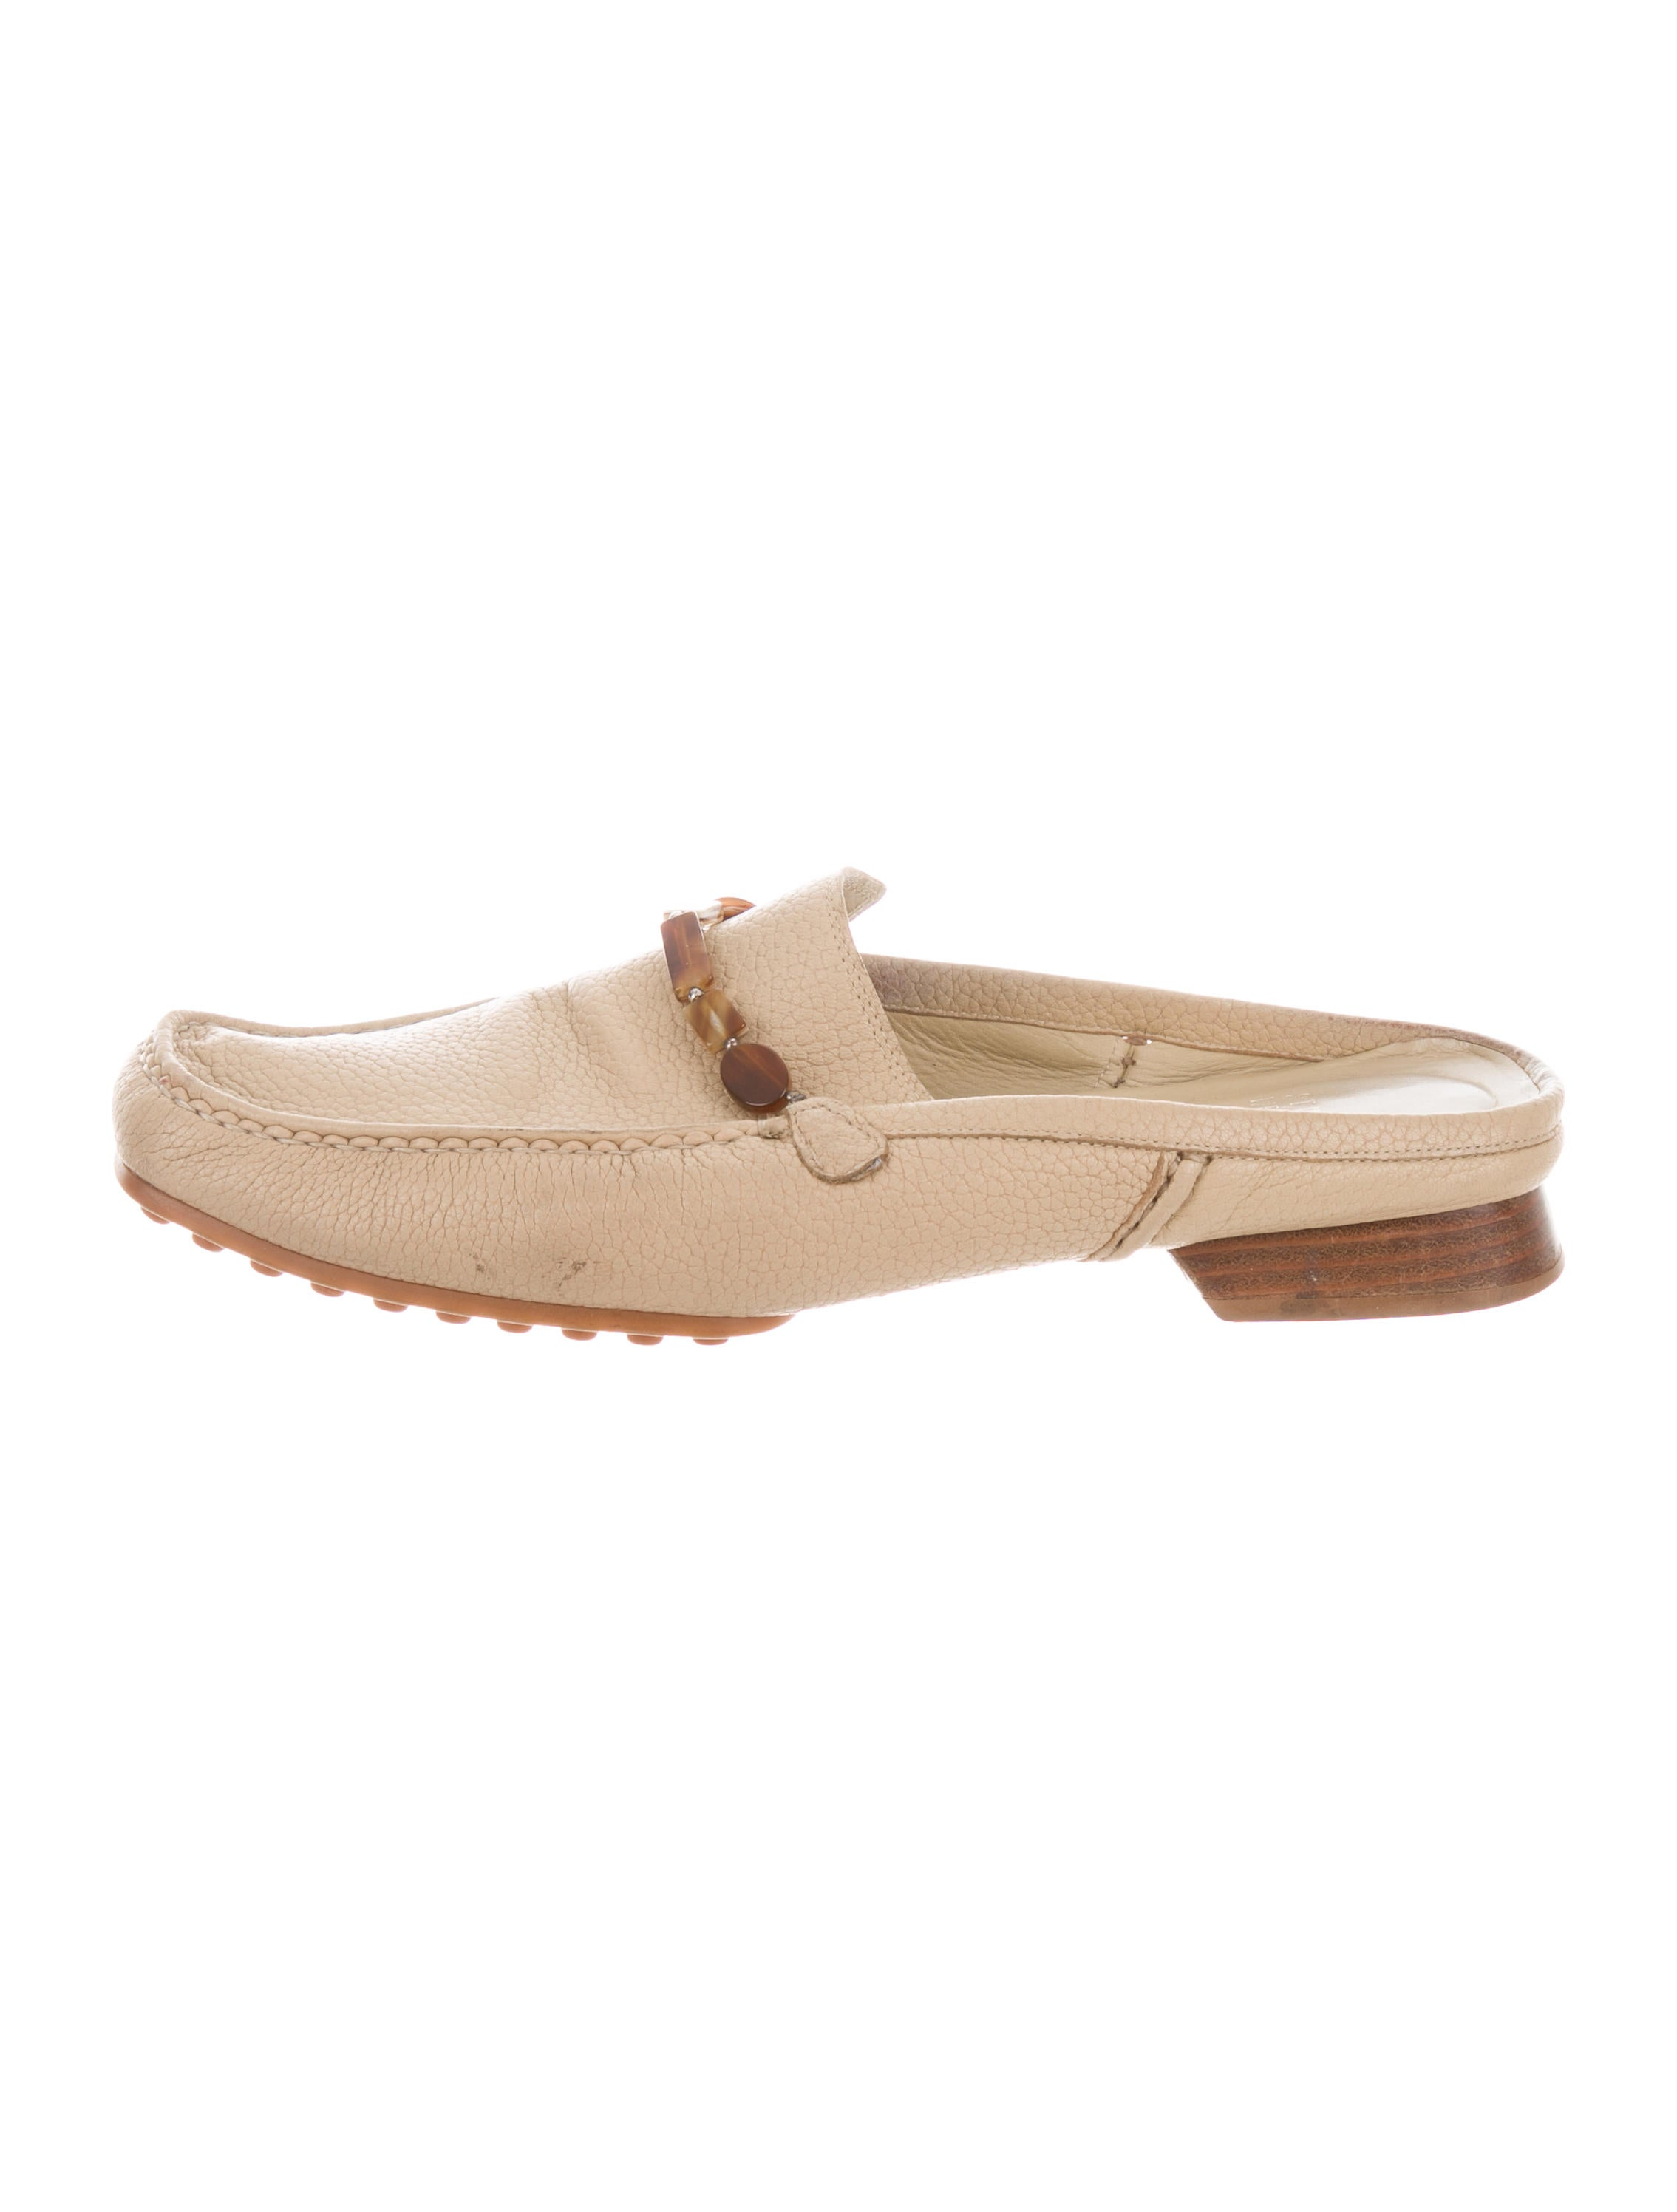 Stuart Weitzman Embellished Square-Toe Mules free shipping explore cheap sale Manchester free shipping deals 100% guaranteed cheap online outlet with paypal order IcLX8Pf